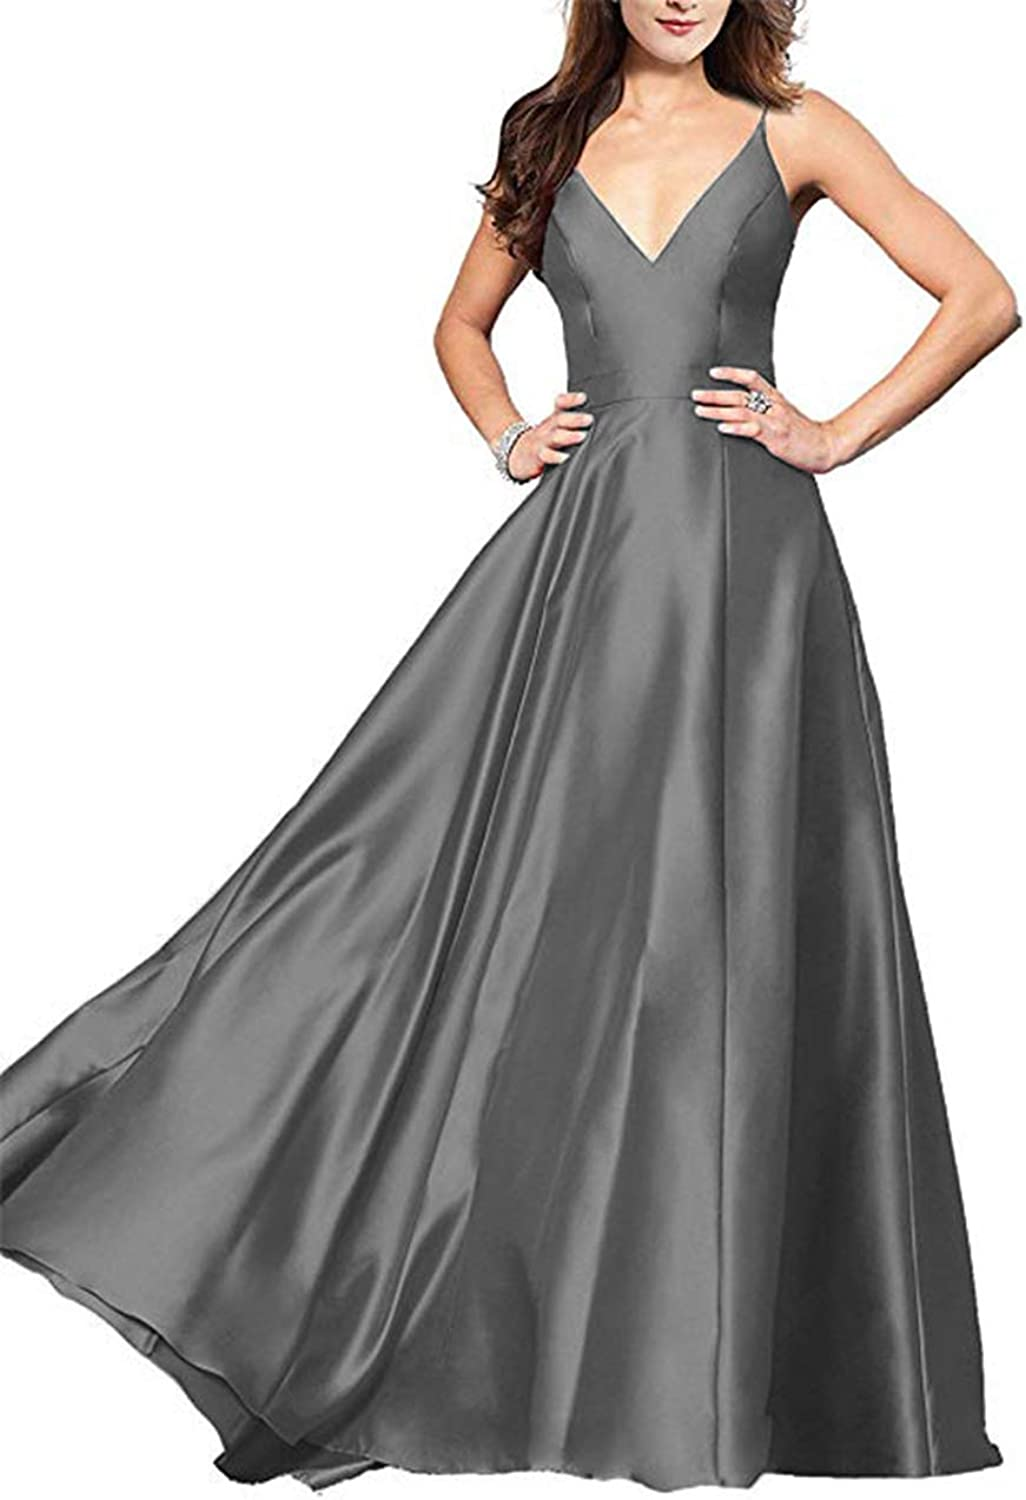 Alilith.Z Sexy Spaghetti Strap Satin Prom Dresses 2019 Long Evening Dresses Formal Party Ball Gowns for Women